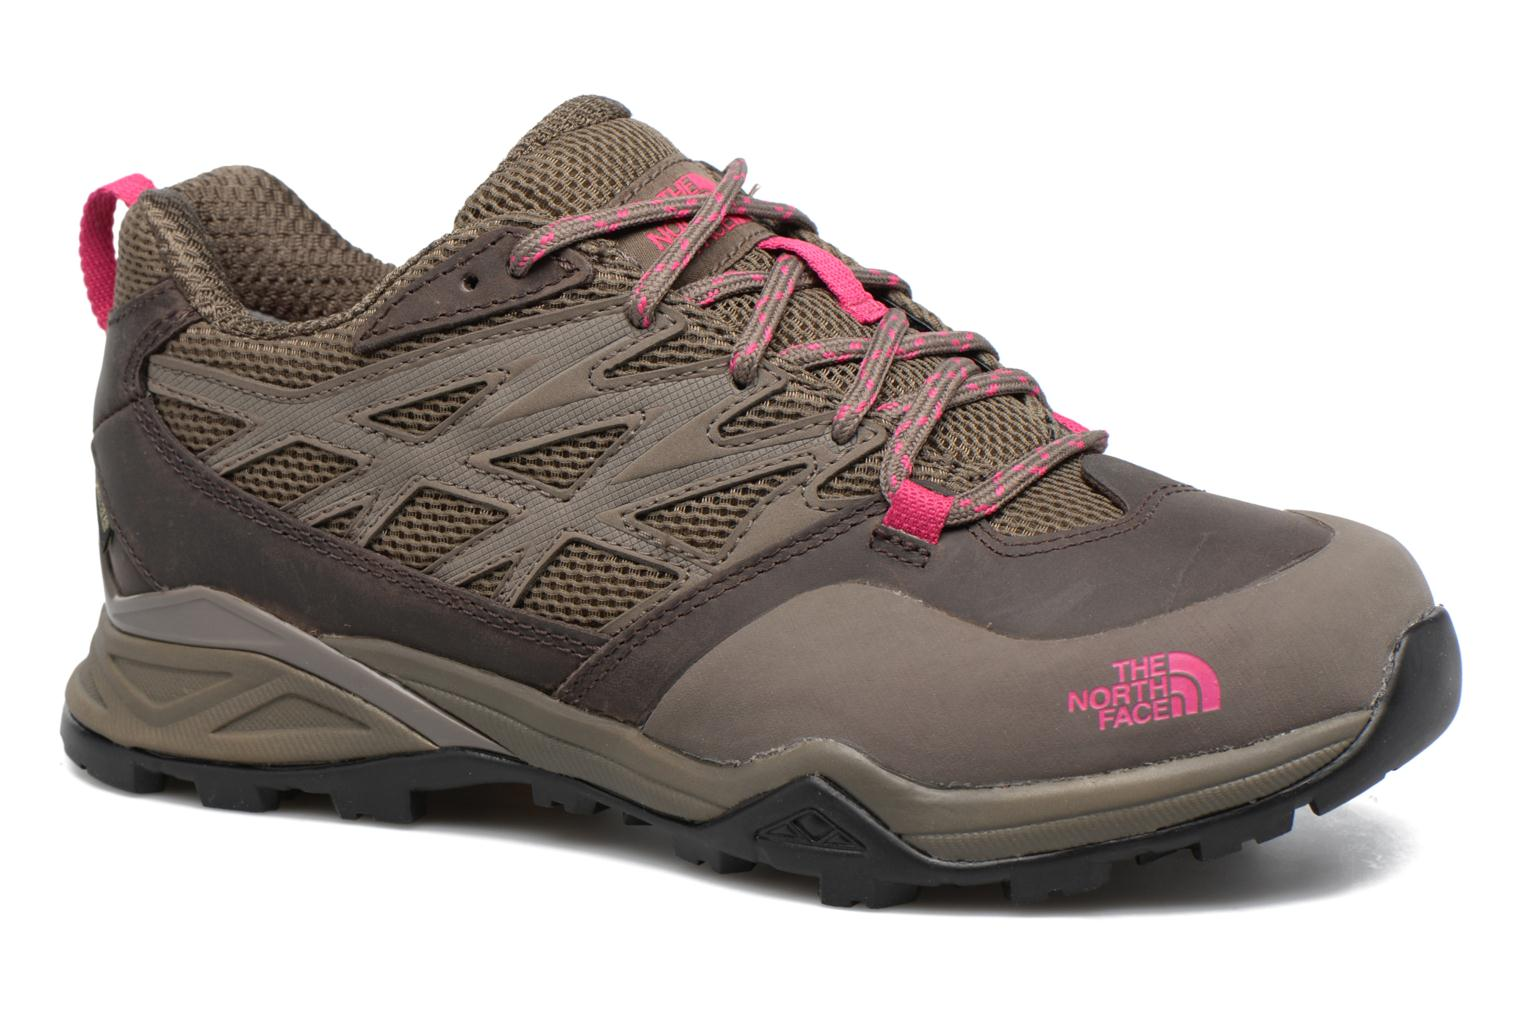 Hedgehog Hike Falcon Brown/Cabaret Pink